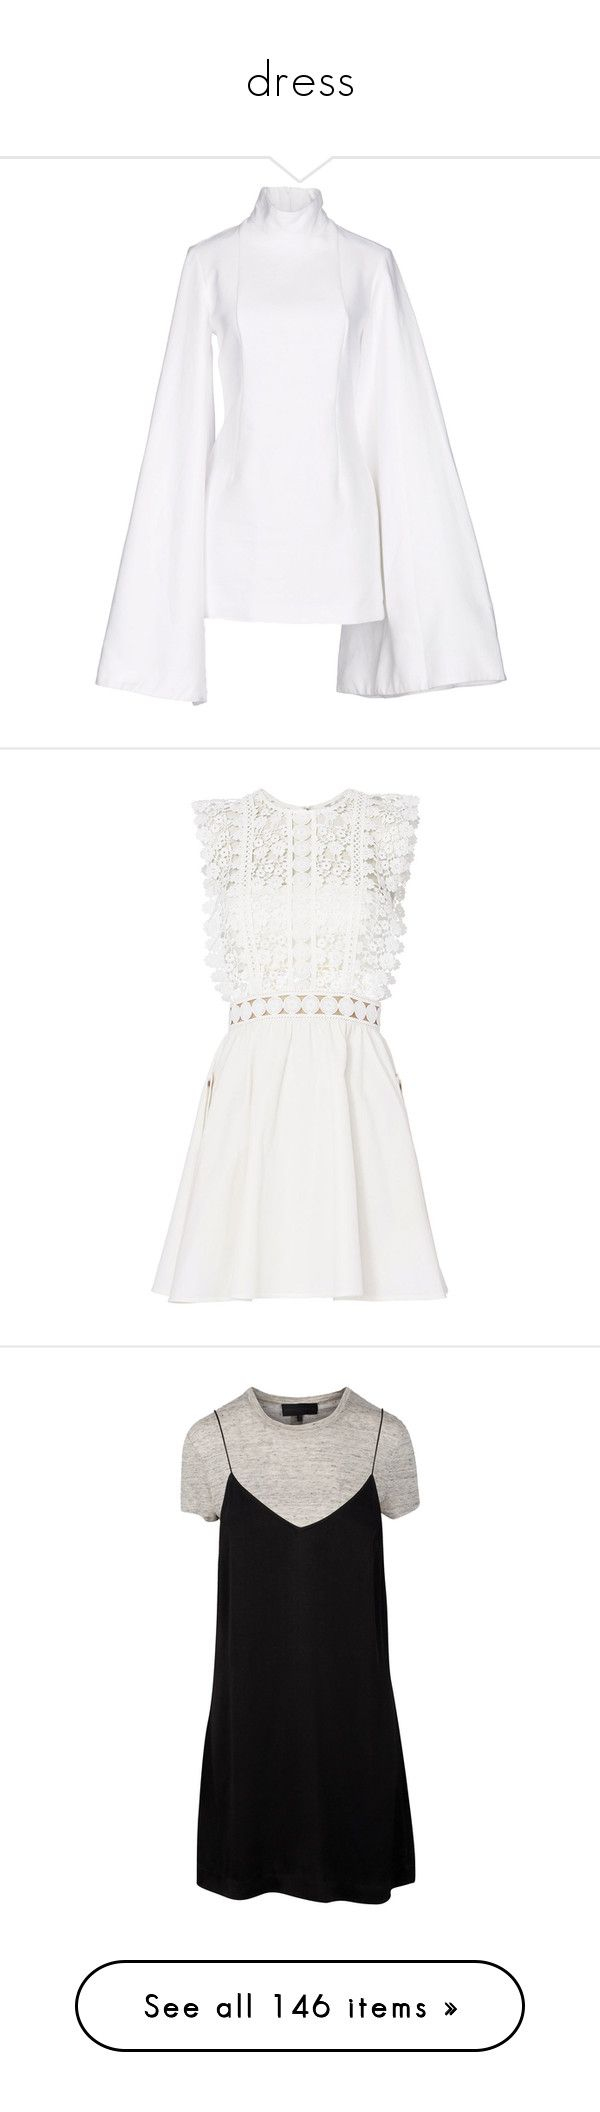 """dress"" by rexanne-official ❤ liked on Polyvore featuring dresses, white, long-sleeve mini dress, mini dress, white turtleneck dress, long sleeve dress, long sleeve turtleneck dress, white dresses, floral fit and flare dress and white mini dress"